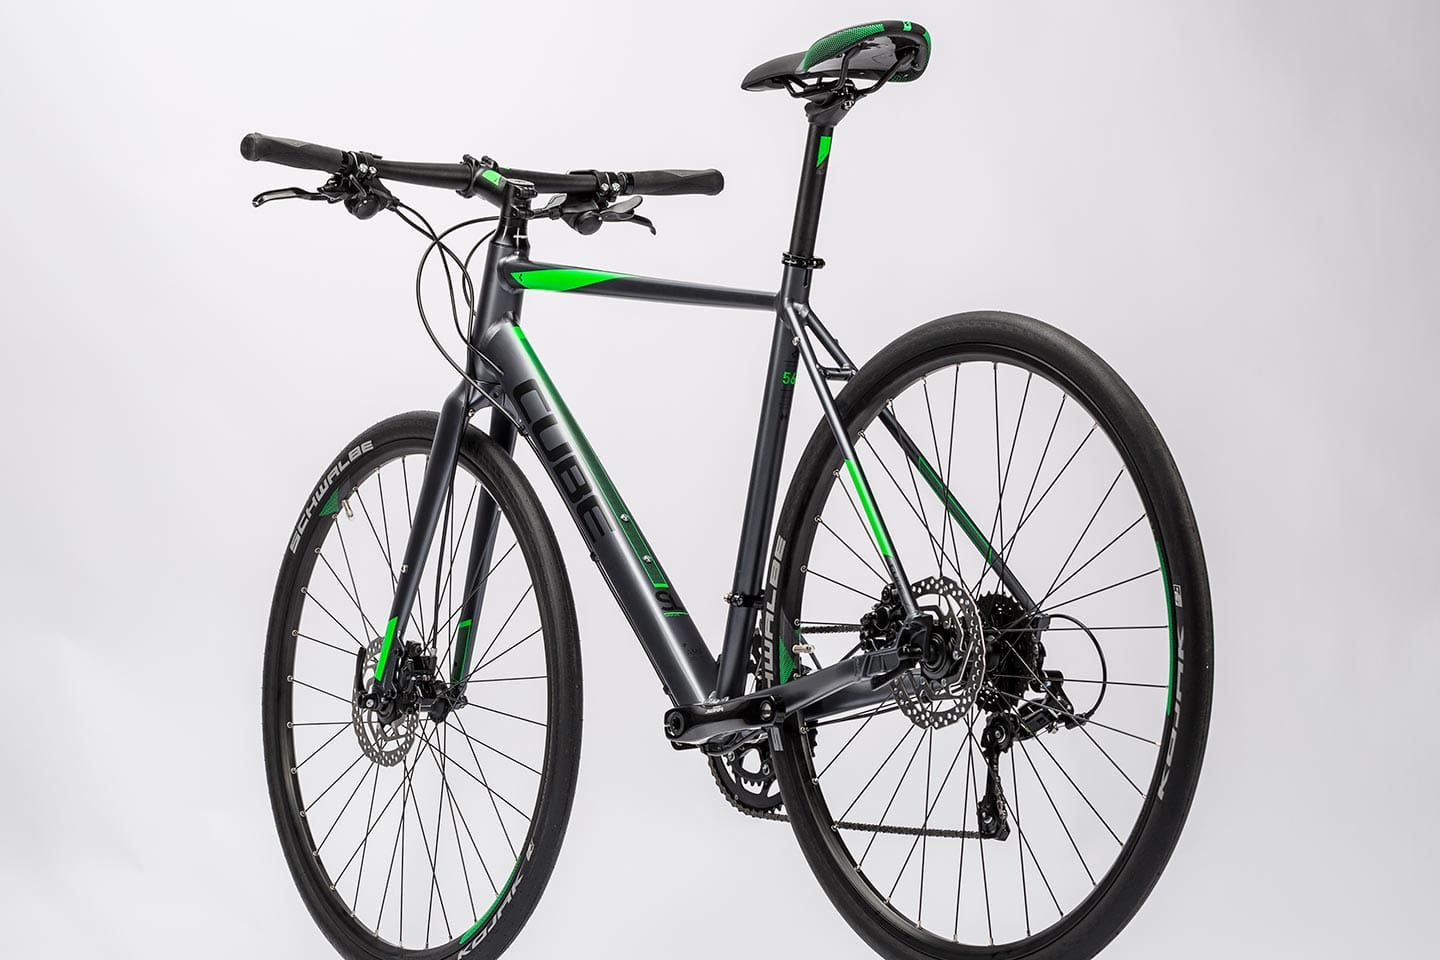 Cube Sl Road Pro City Bike 2016 All Terrain Cycles